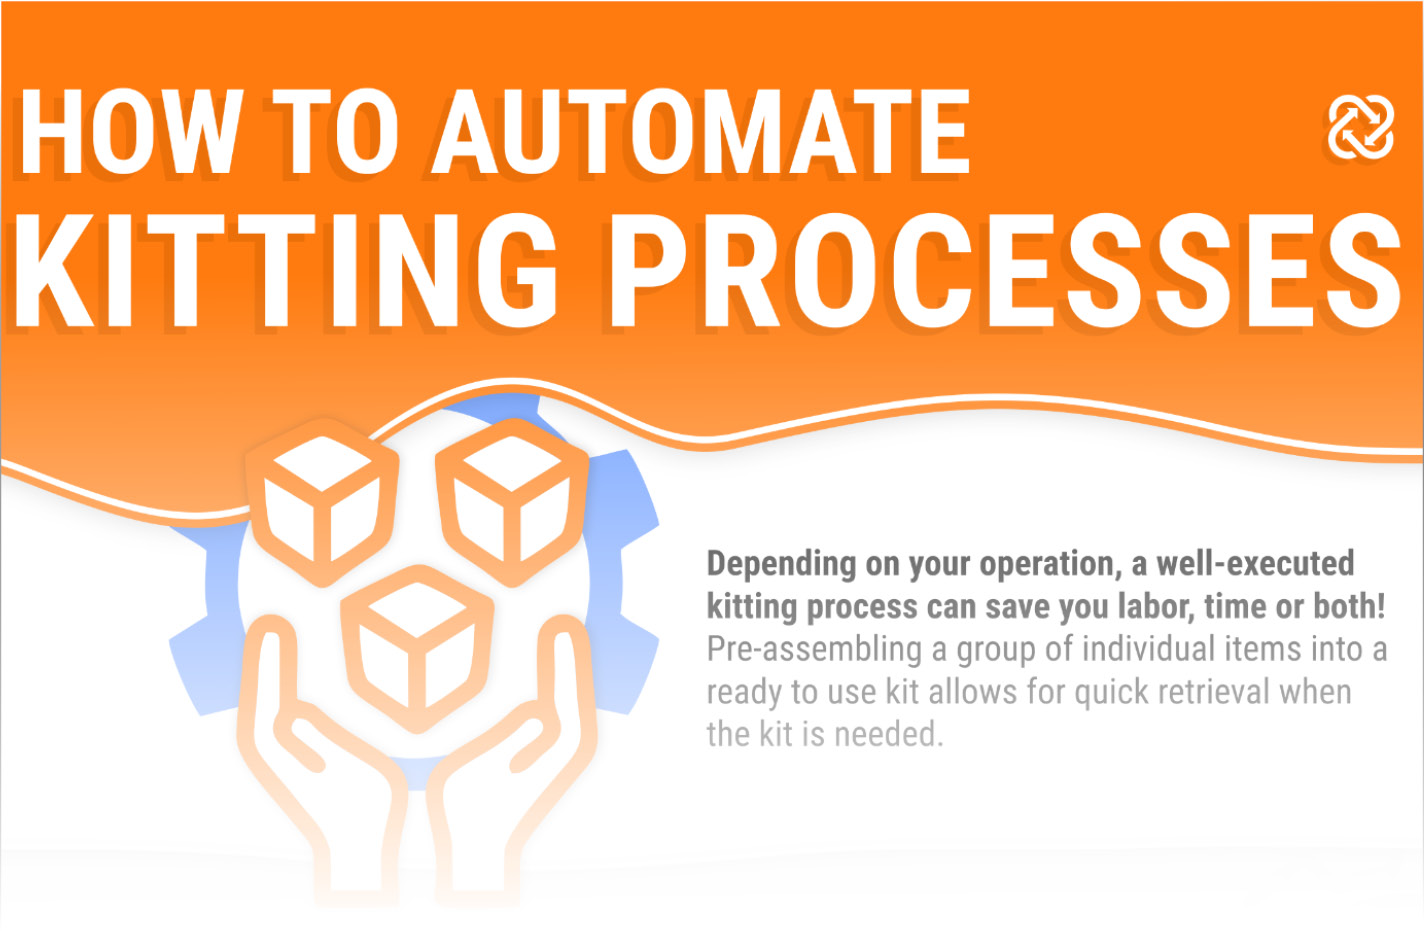 Preview of the How to Automate Kitting Process Infographic